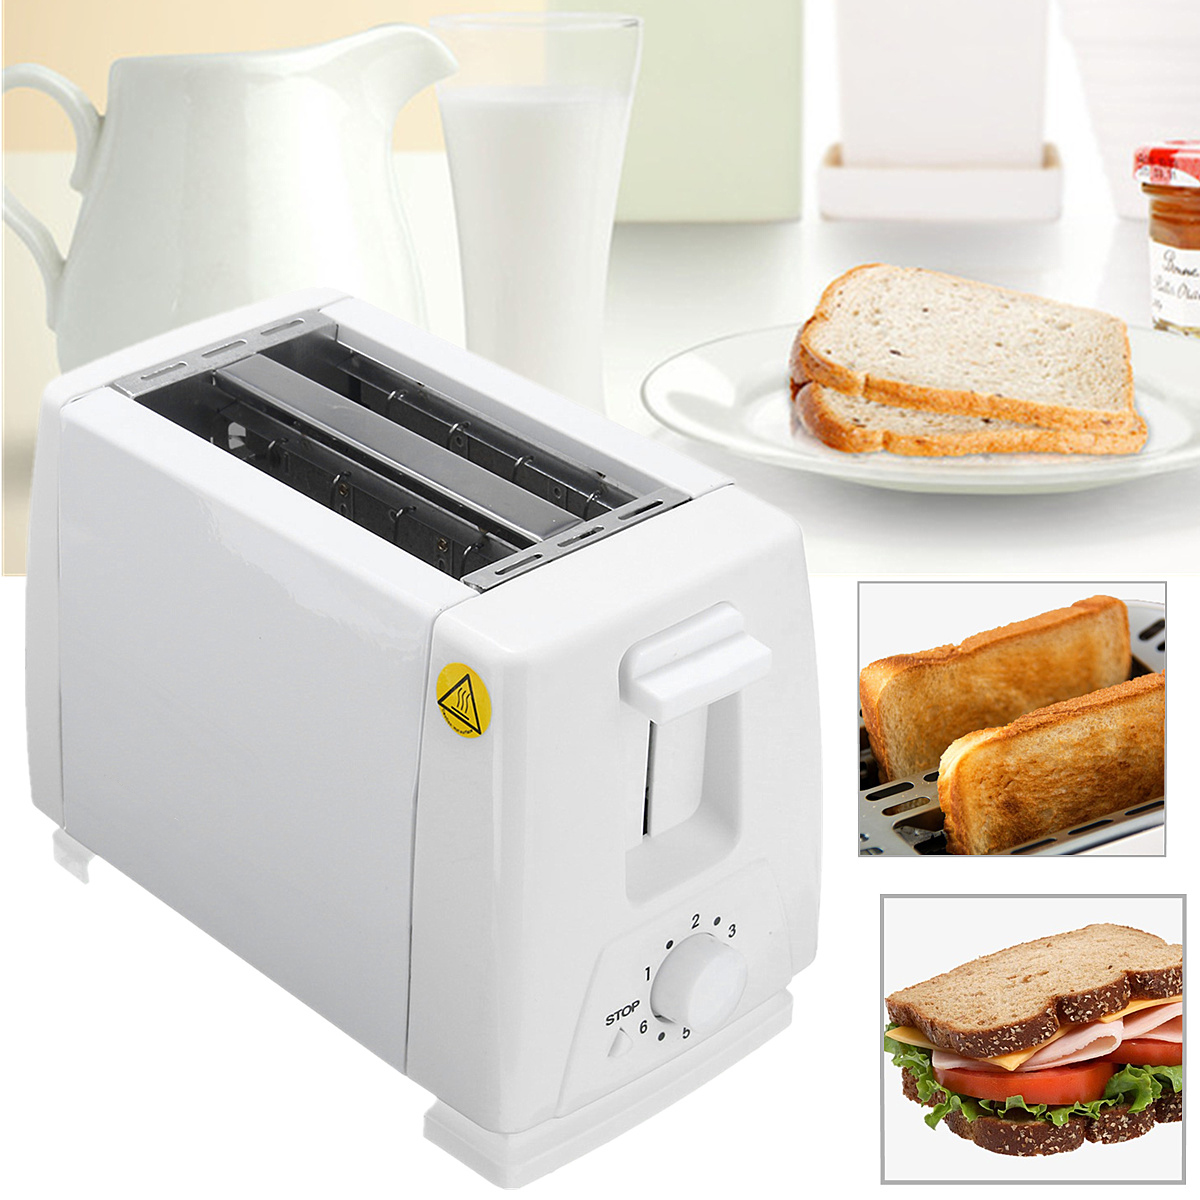 750W EU Plug 2 Slice Slots Stainless Steel  Automatic Electric Bread Toaster Mini Household Breakfast Baking Bread Machine750W EU Plug 2 Slice Slots Stainless Steel  Automatic Electric Bread Toaster Mini Household Breakfast Baking Bread Machine